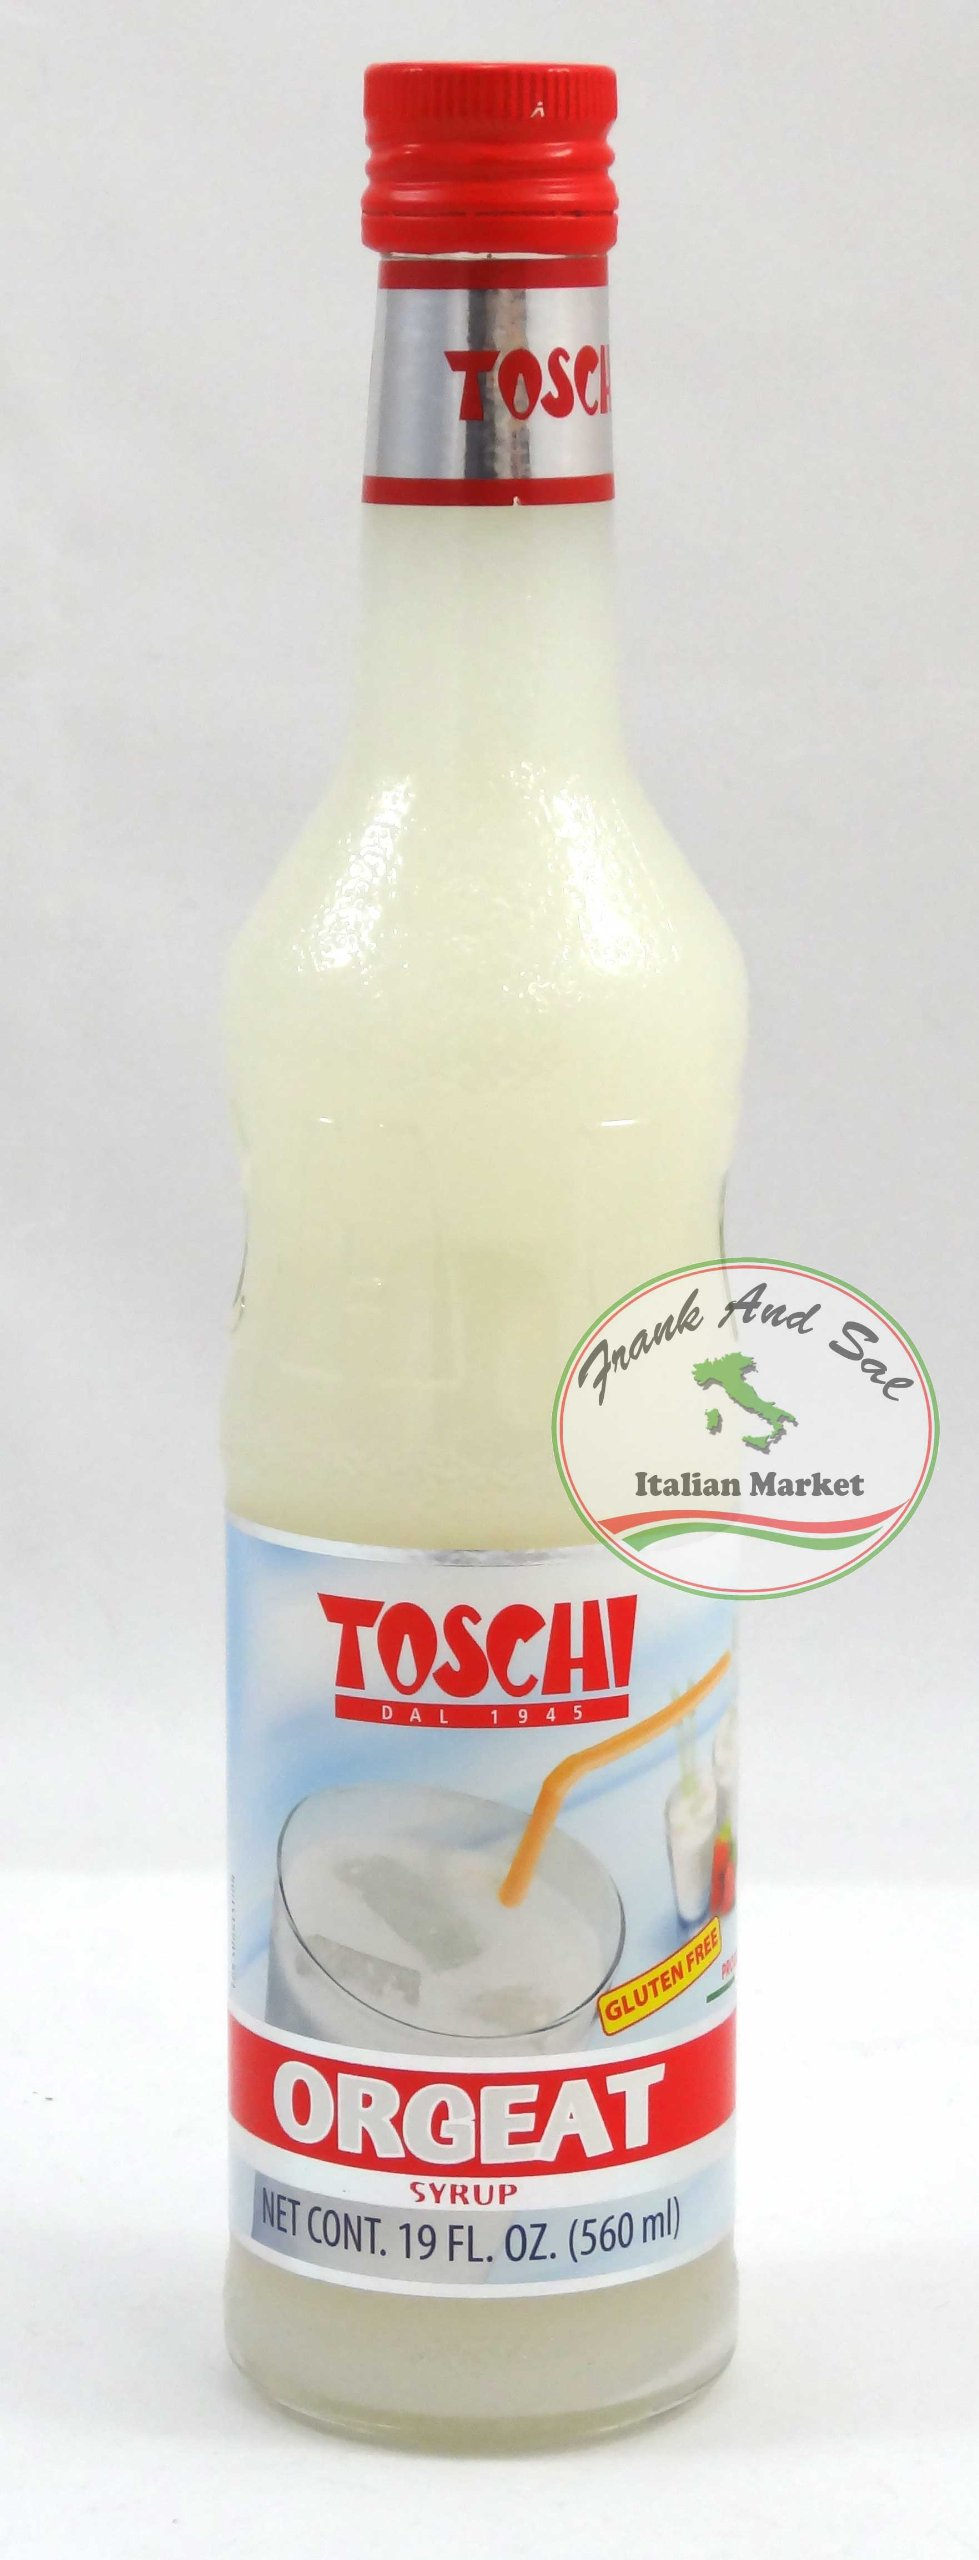 Toschi - Orzata - Orgeat Syrup - Benzoin Syrup - Almond Strup- Cocktail Syrup 19